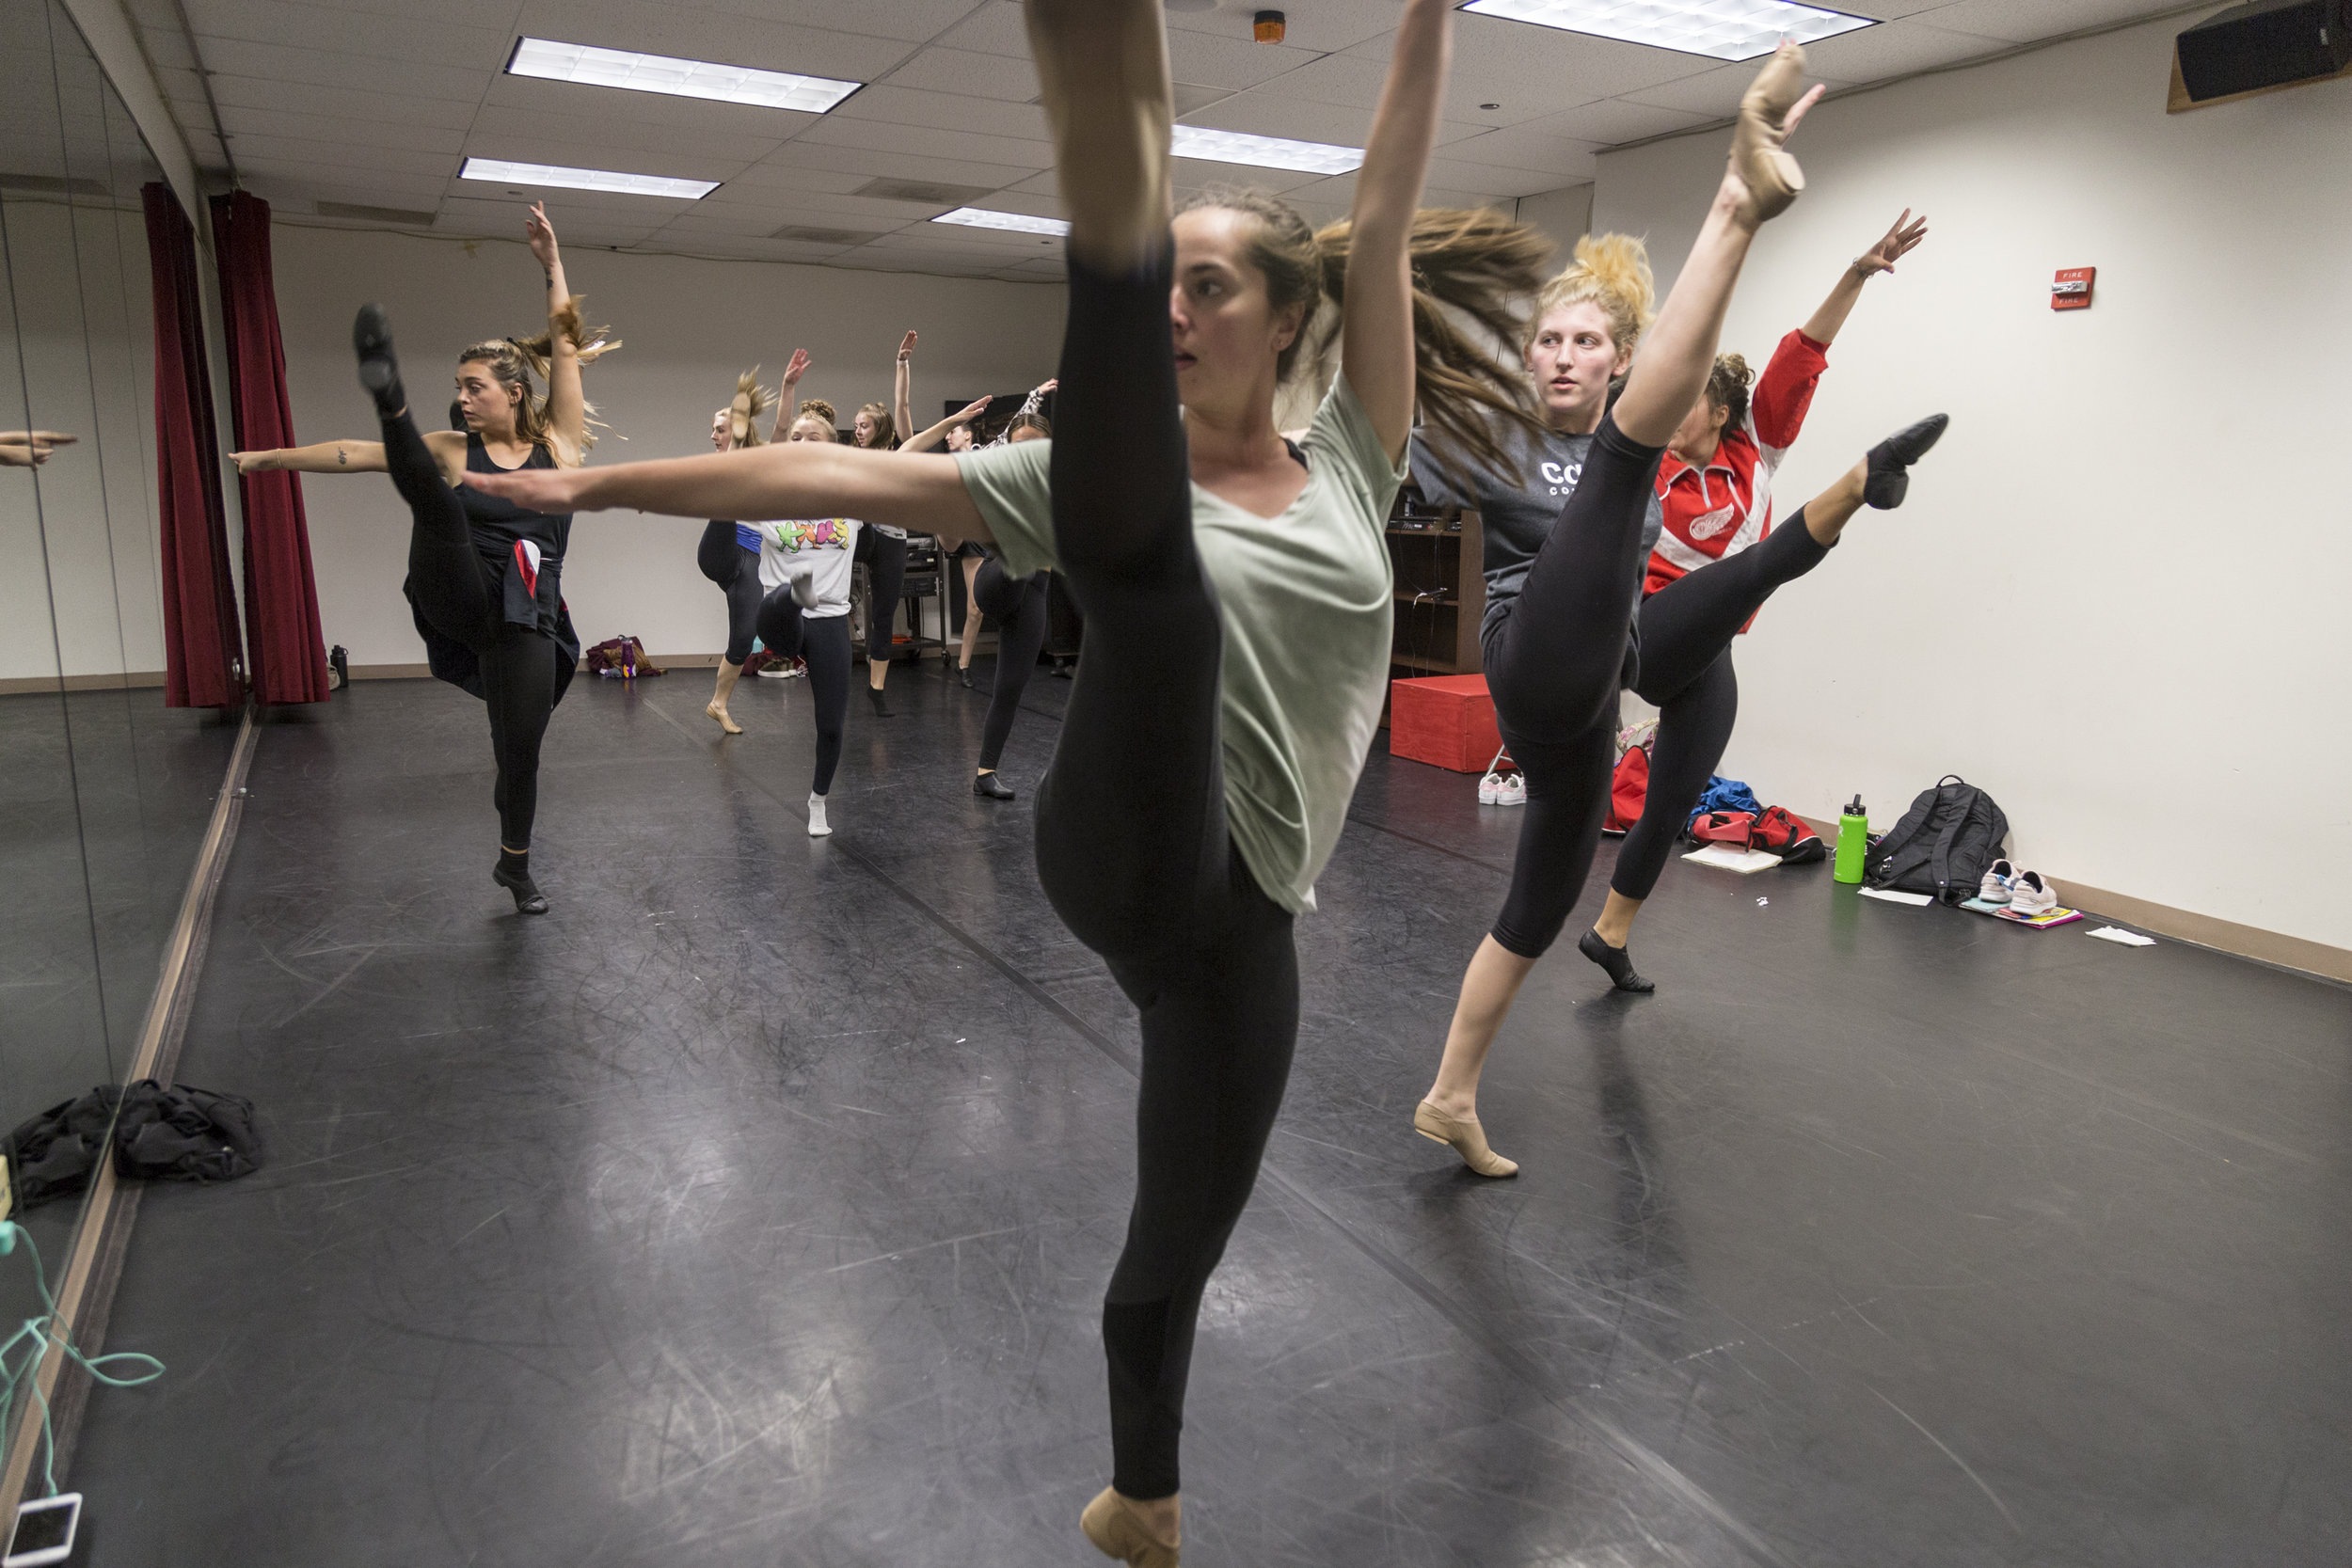 The Columbia College Dance Team rehearses in a dance studio at 1306 S. Michigan Ave. Wednesday, Oct. 4.